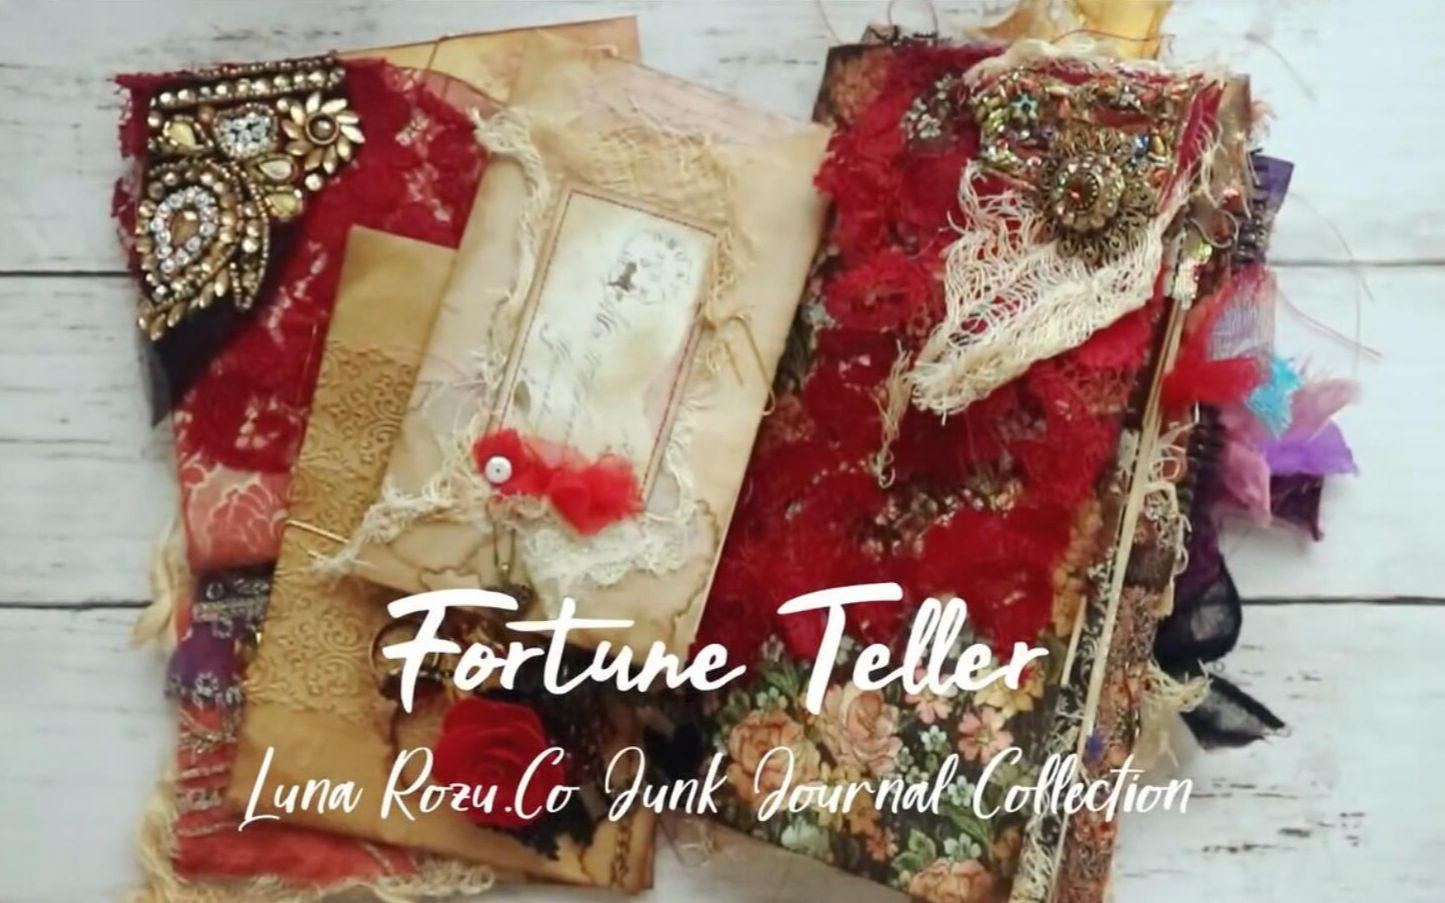 【搬运】-Fortune Teller Junk Journal-by Luna Rozu